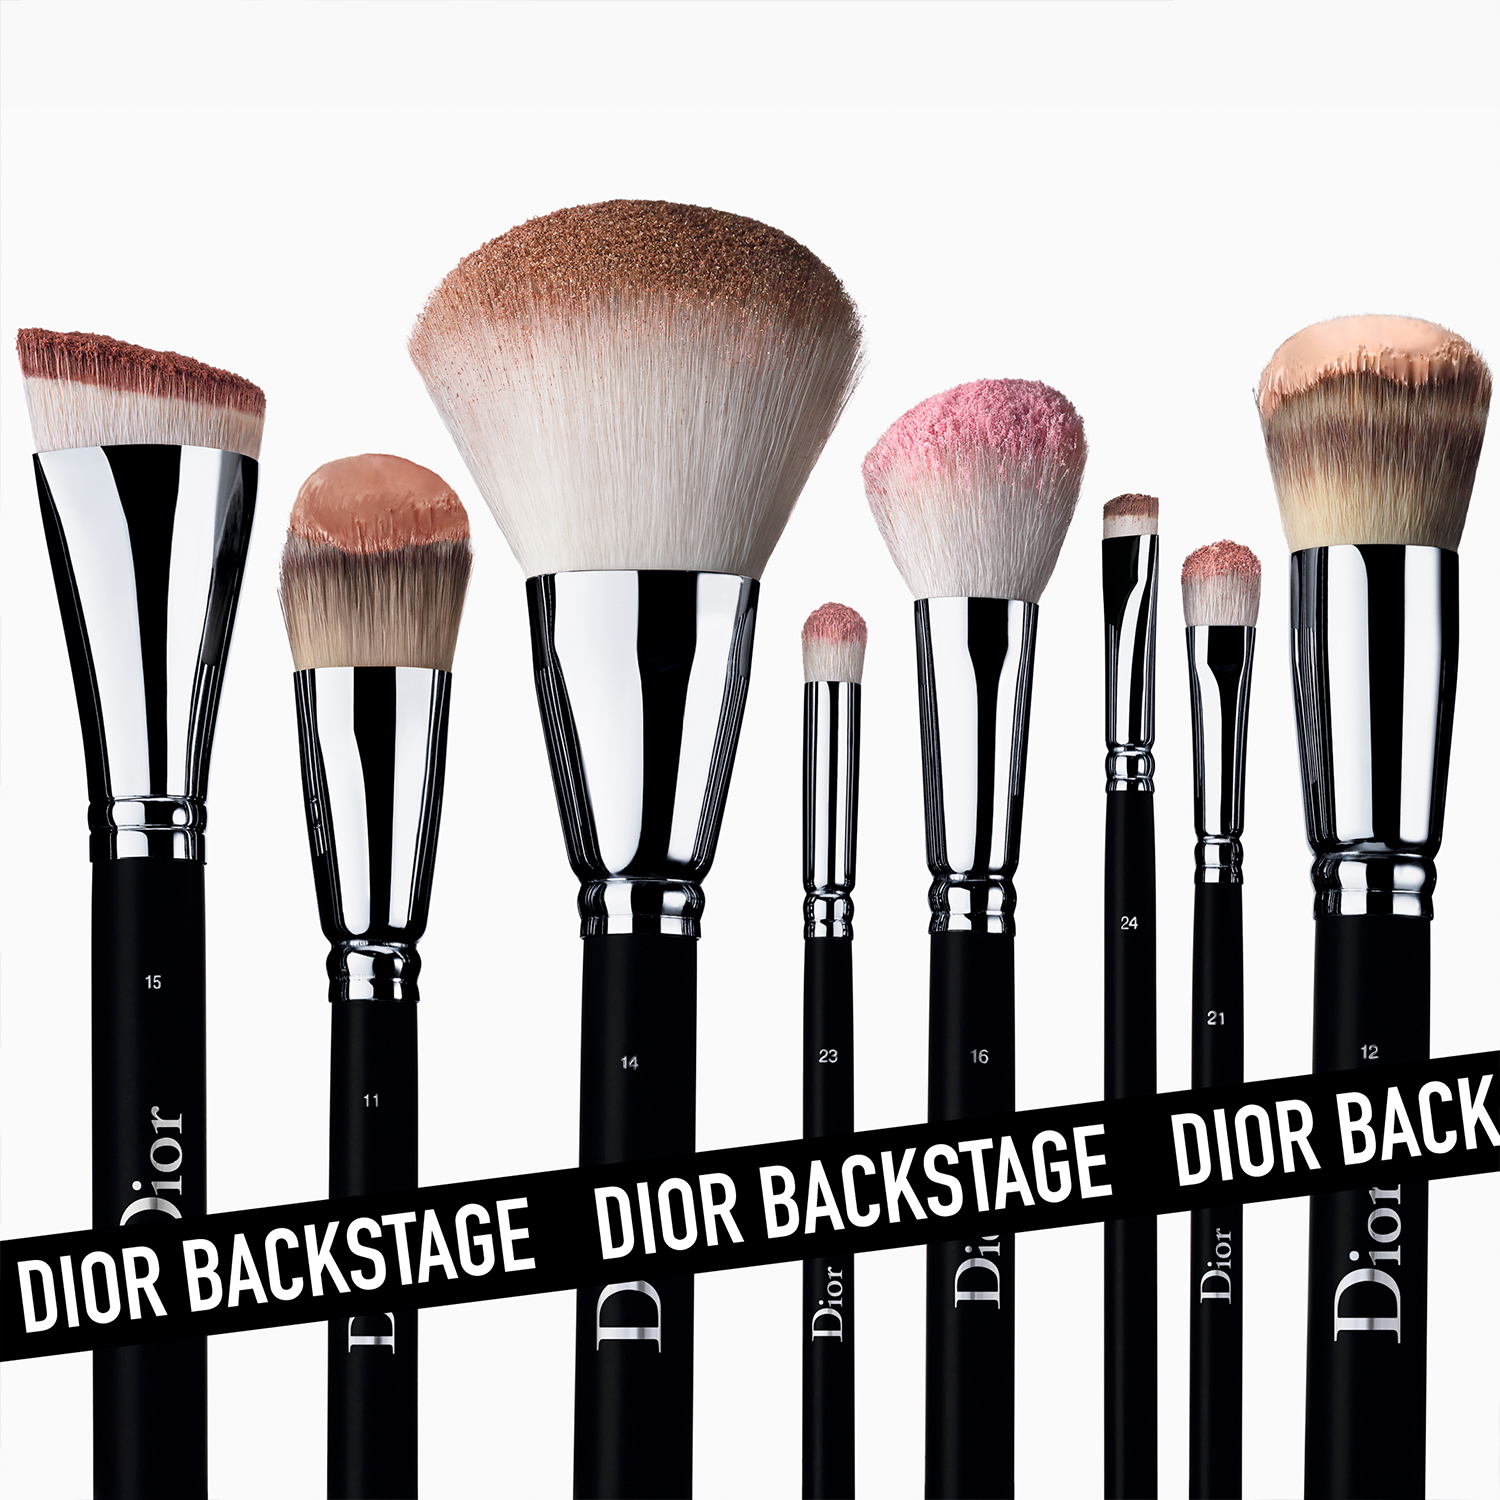 DIOR BACKSTAGE FULL COVERAGE FDT  BRUSH NO. 12